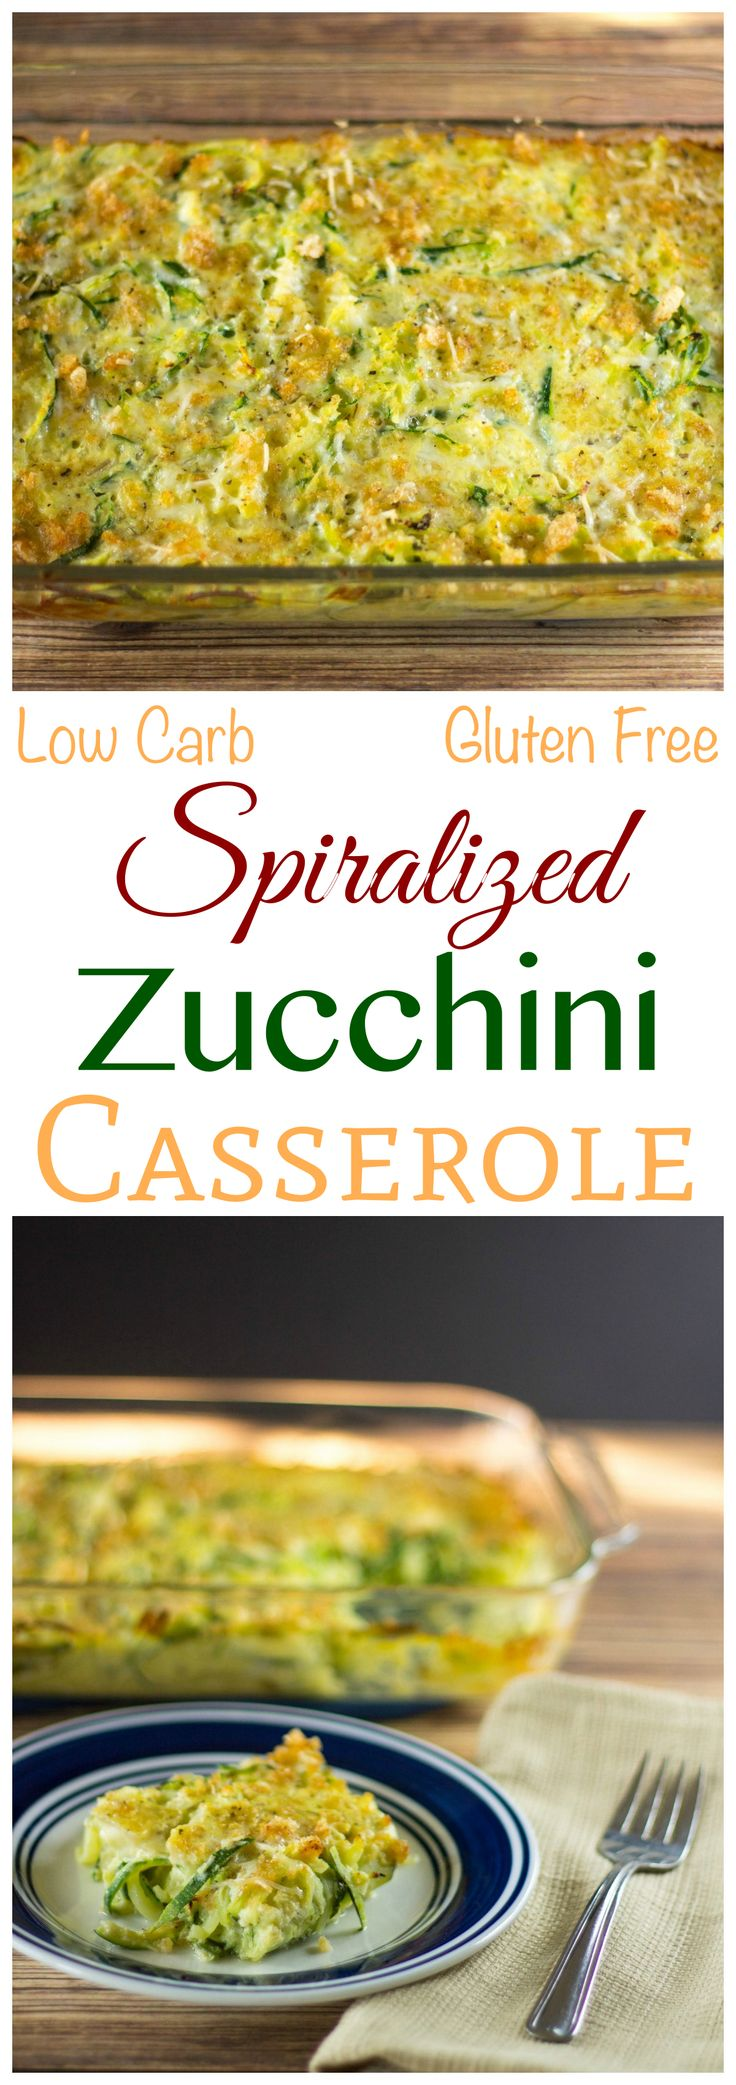 Enjoy this tasty low carb spiralized zucchini casserole as a side dish for a main meal or brunch. It's got an egg base and a crunchy gluten free topping.